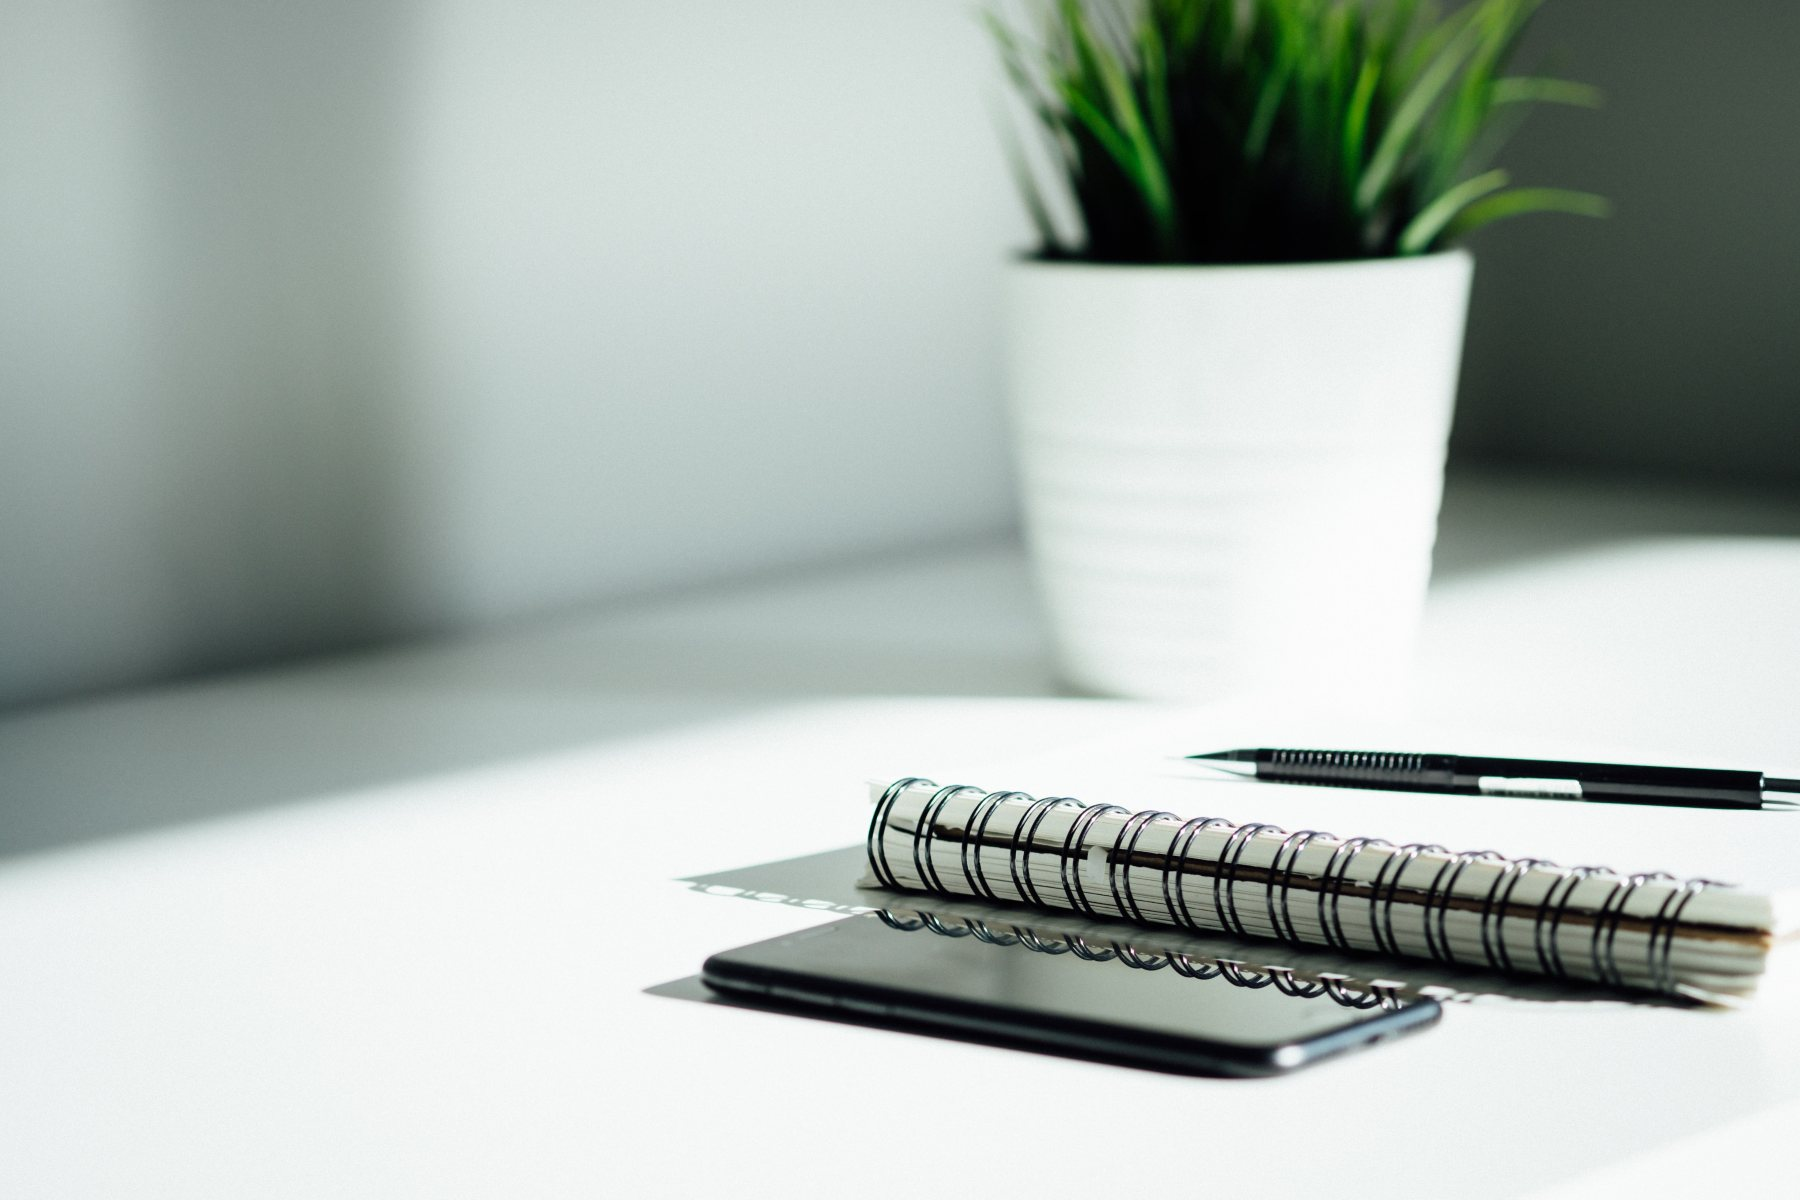 a desk with a plant, pen, notebook and iphone